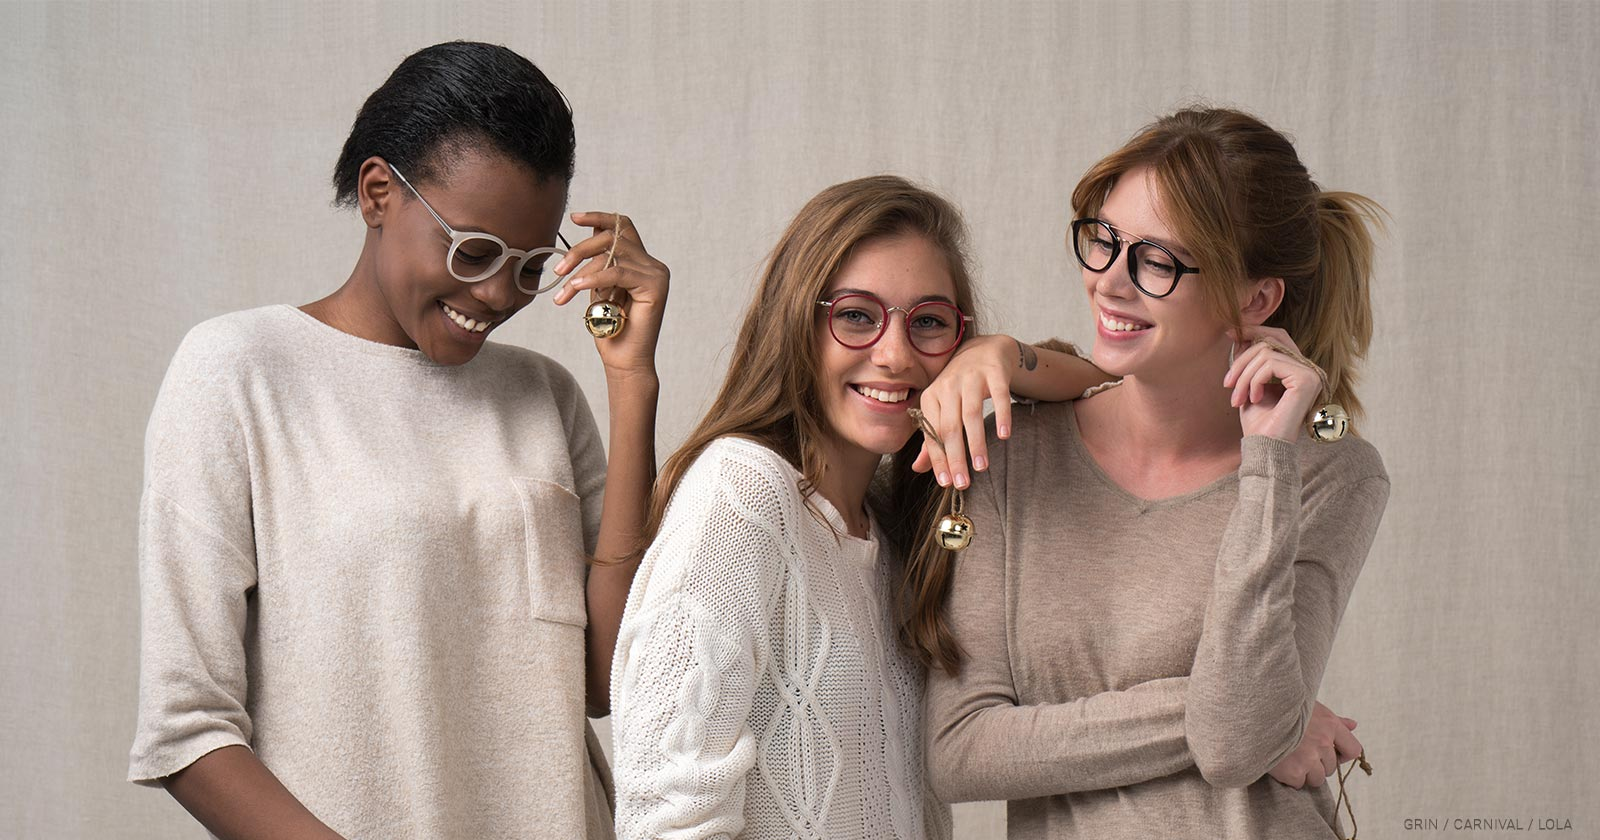 3-girls-happy-wearing-glasses